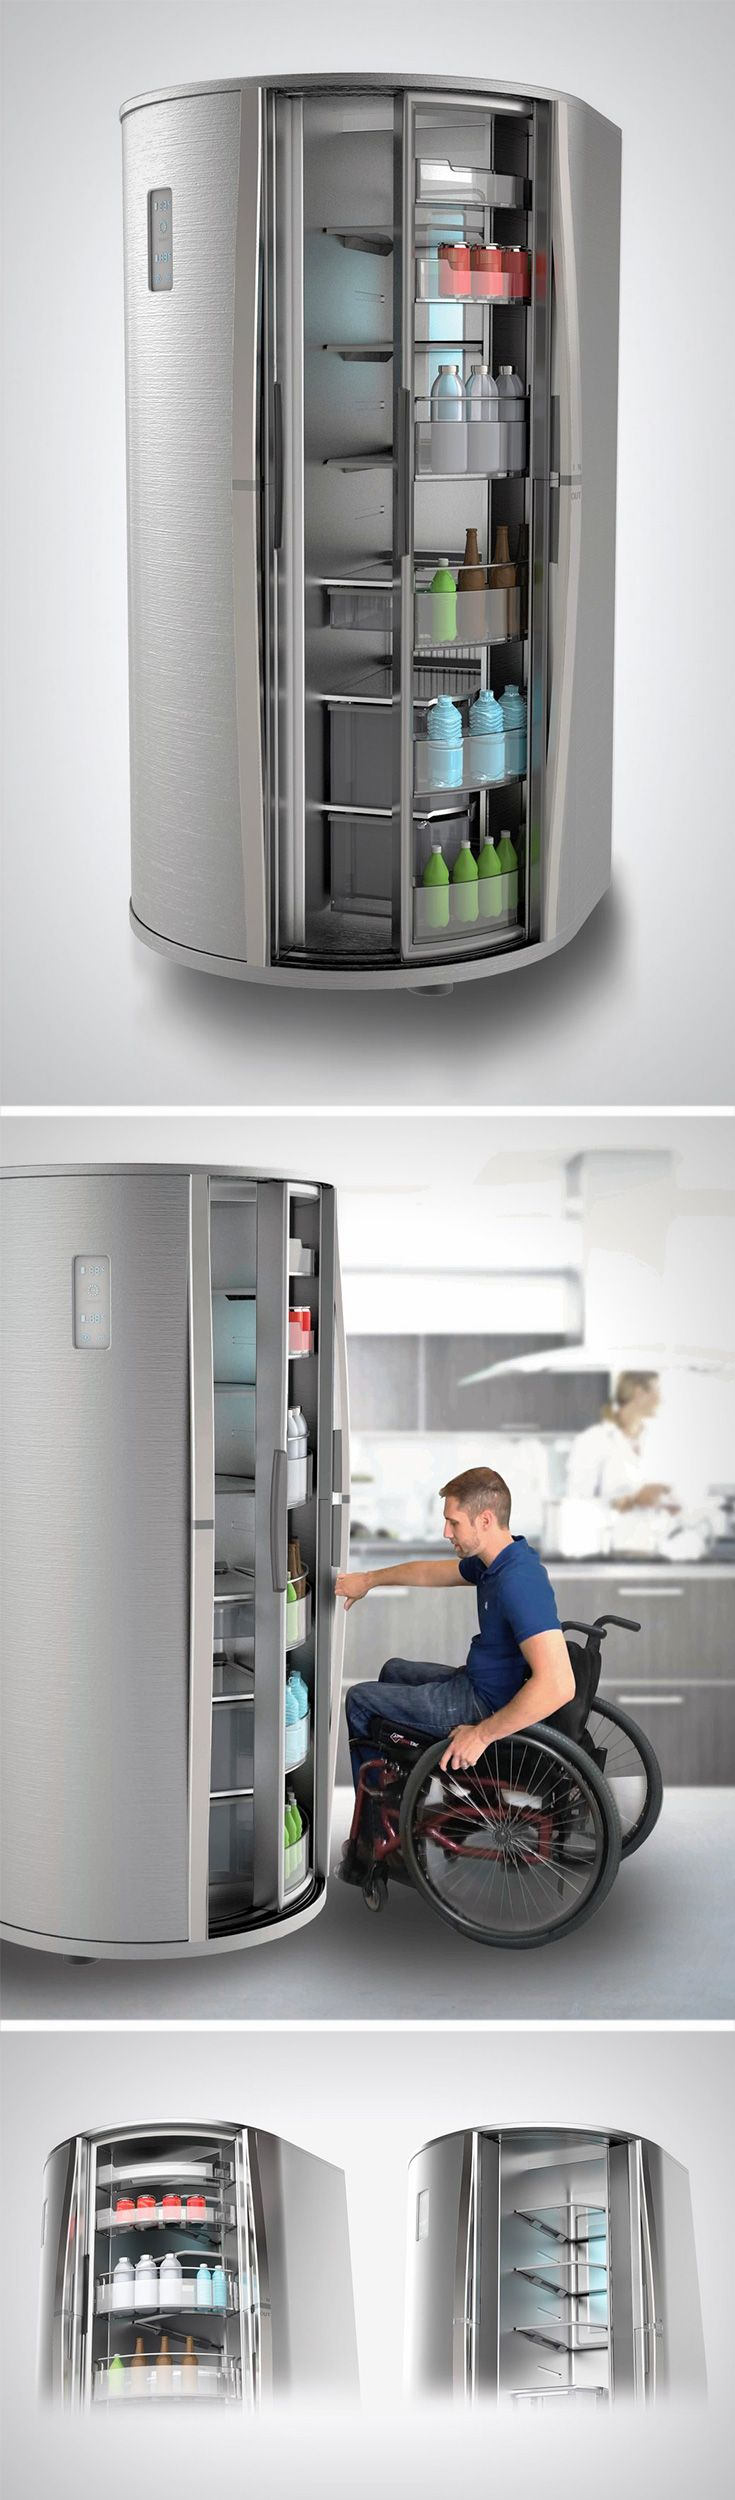 The Sliding Fridge is one such idea that makes a much needed change to the way we interact with fridge doors.